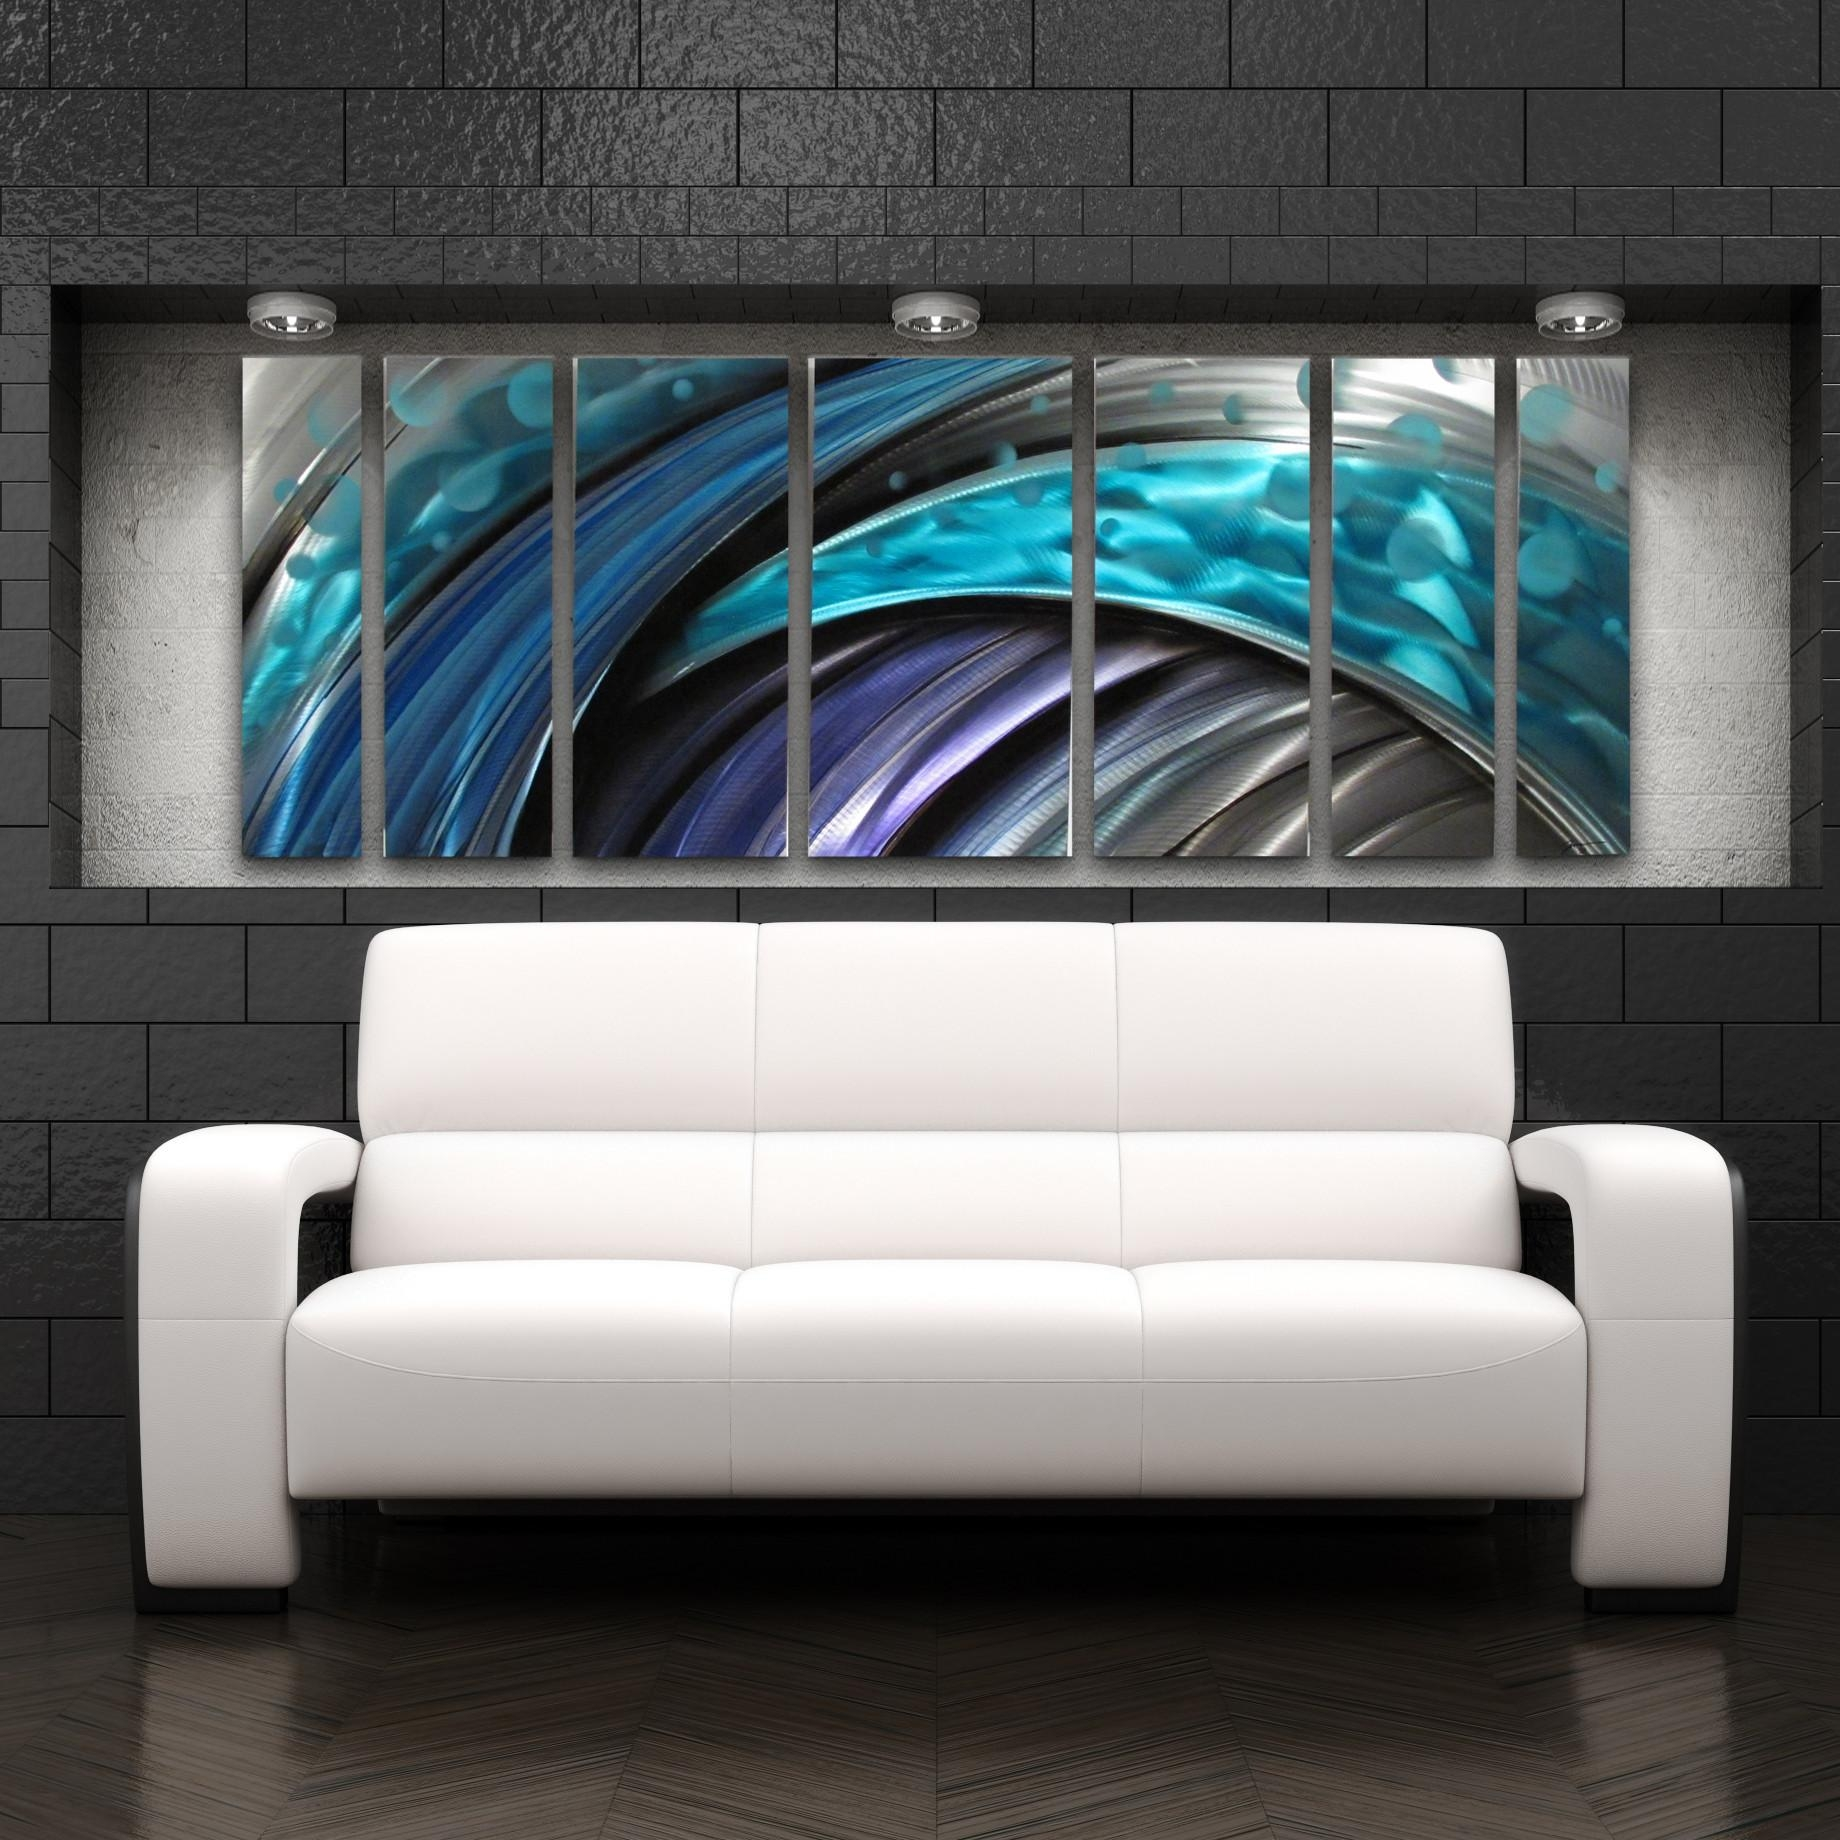 Modern Metal Art Cool Modern Wall Art – Home Decor Ideas With Regard To Unique Modern Wall Art And Decor (Image 14 of 20)